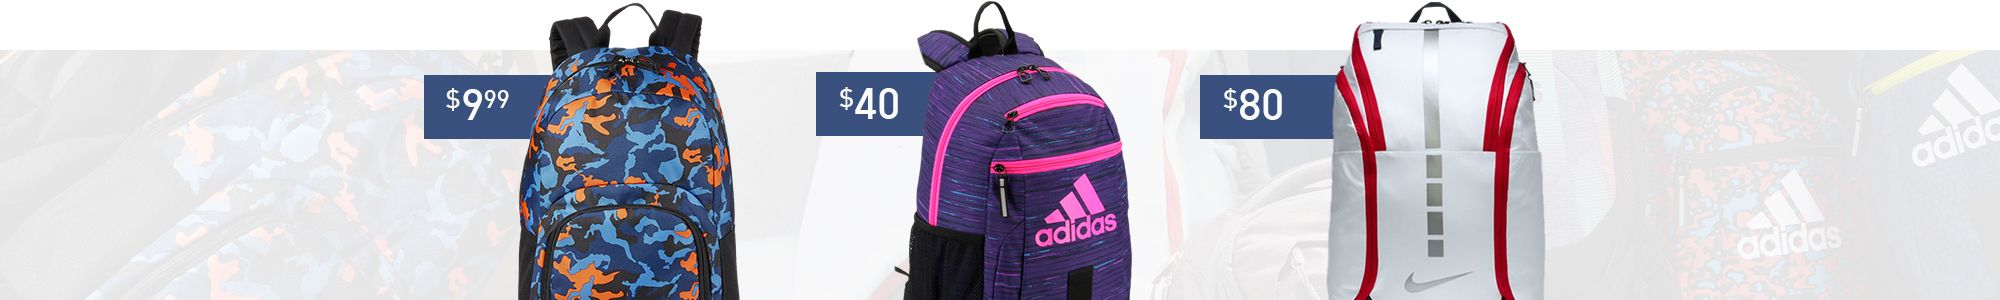 Backpacks | Shop All Top Brands